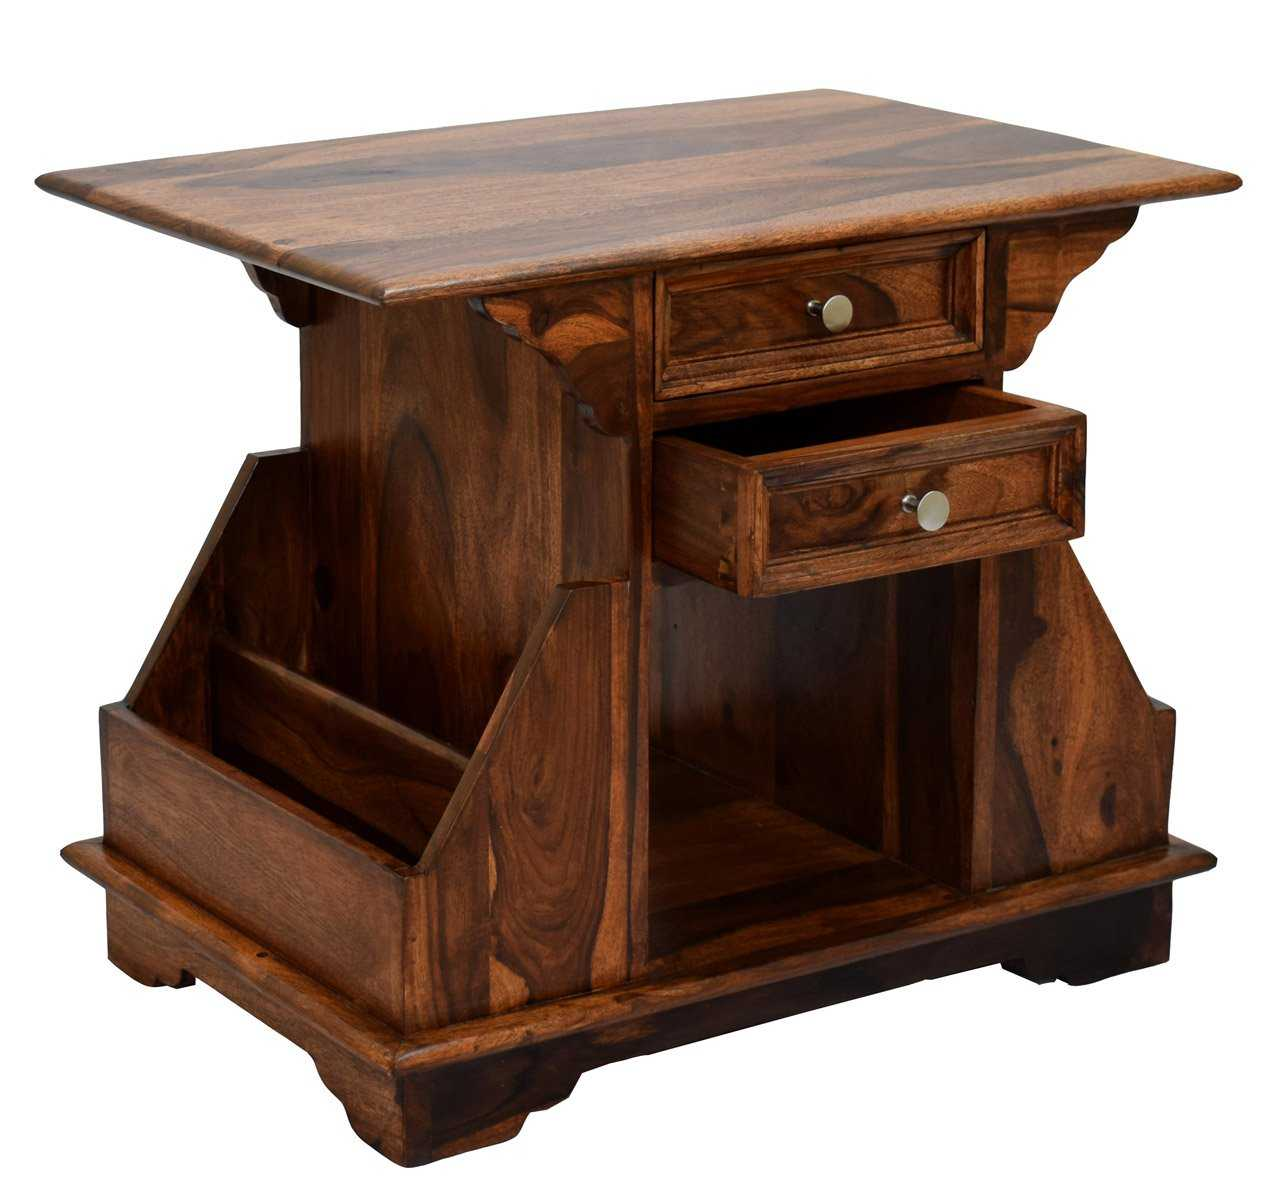 Barniv Drawer Bala Natural Teak Finish Side End Corner Accent Table Magazine Stand l Home Furniture